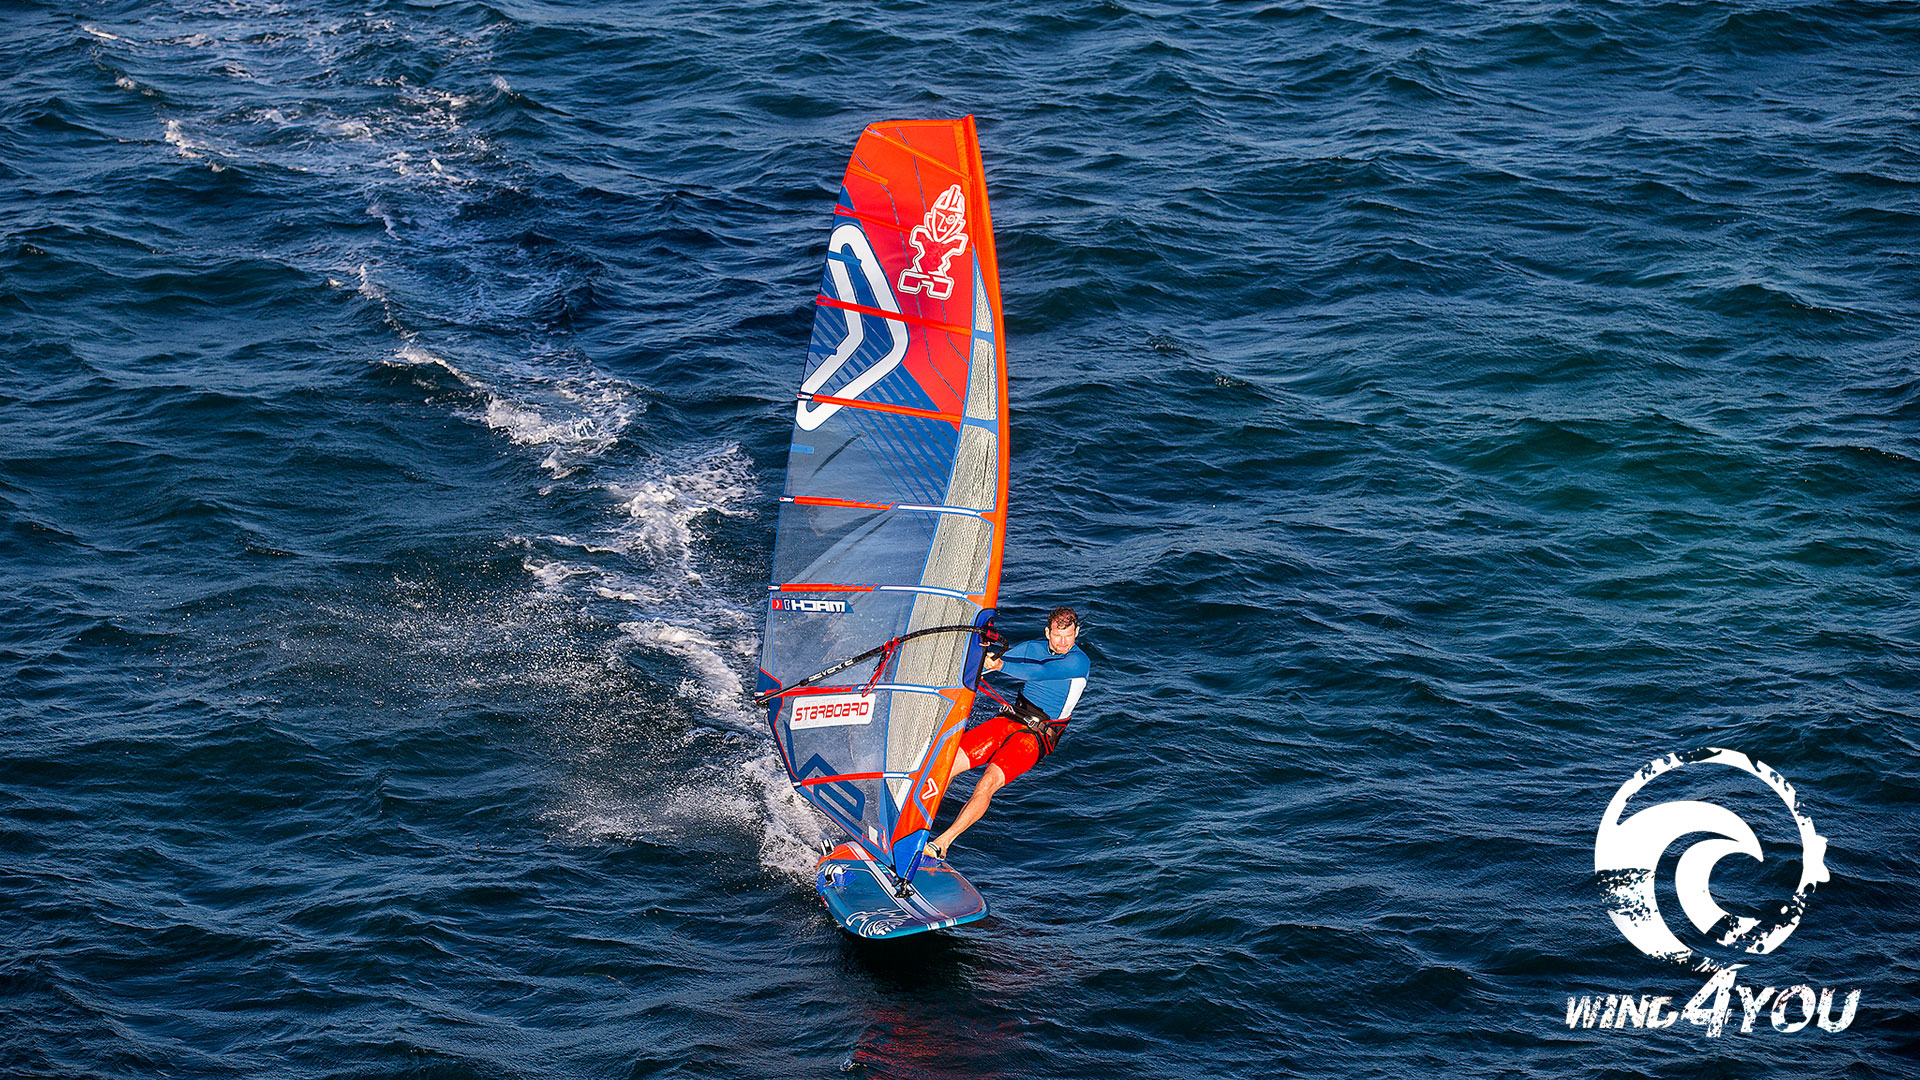 Nowa super baza windsurfingowa nad jeziorem BUKOWO - Wind4You